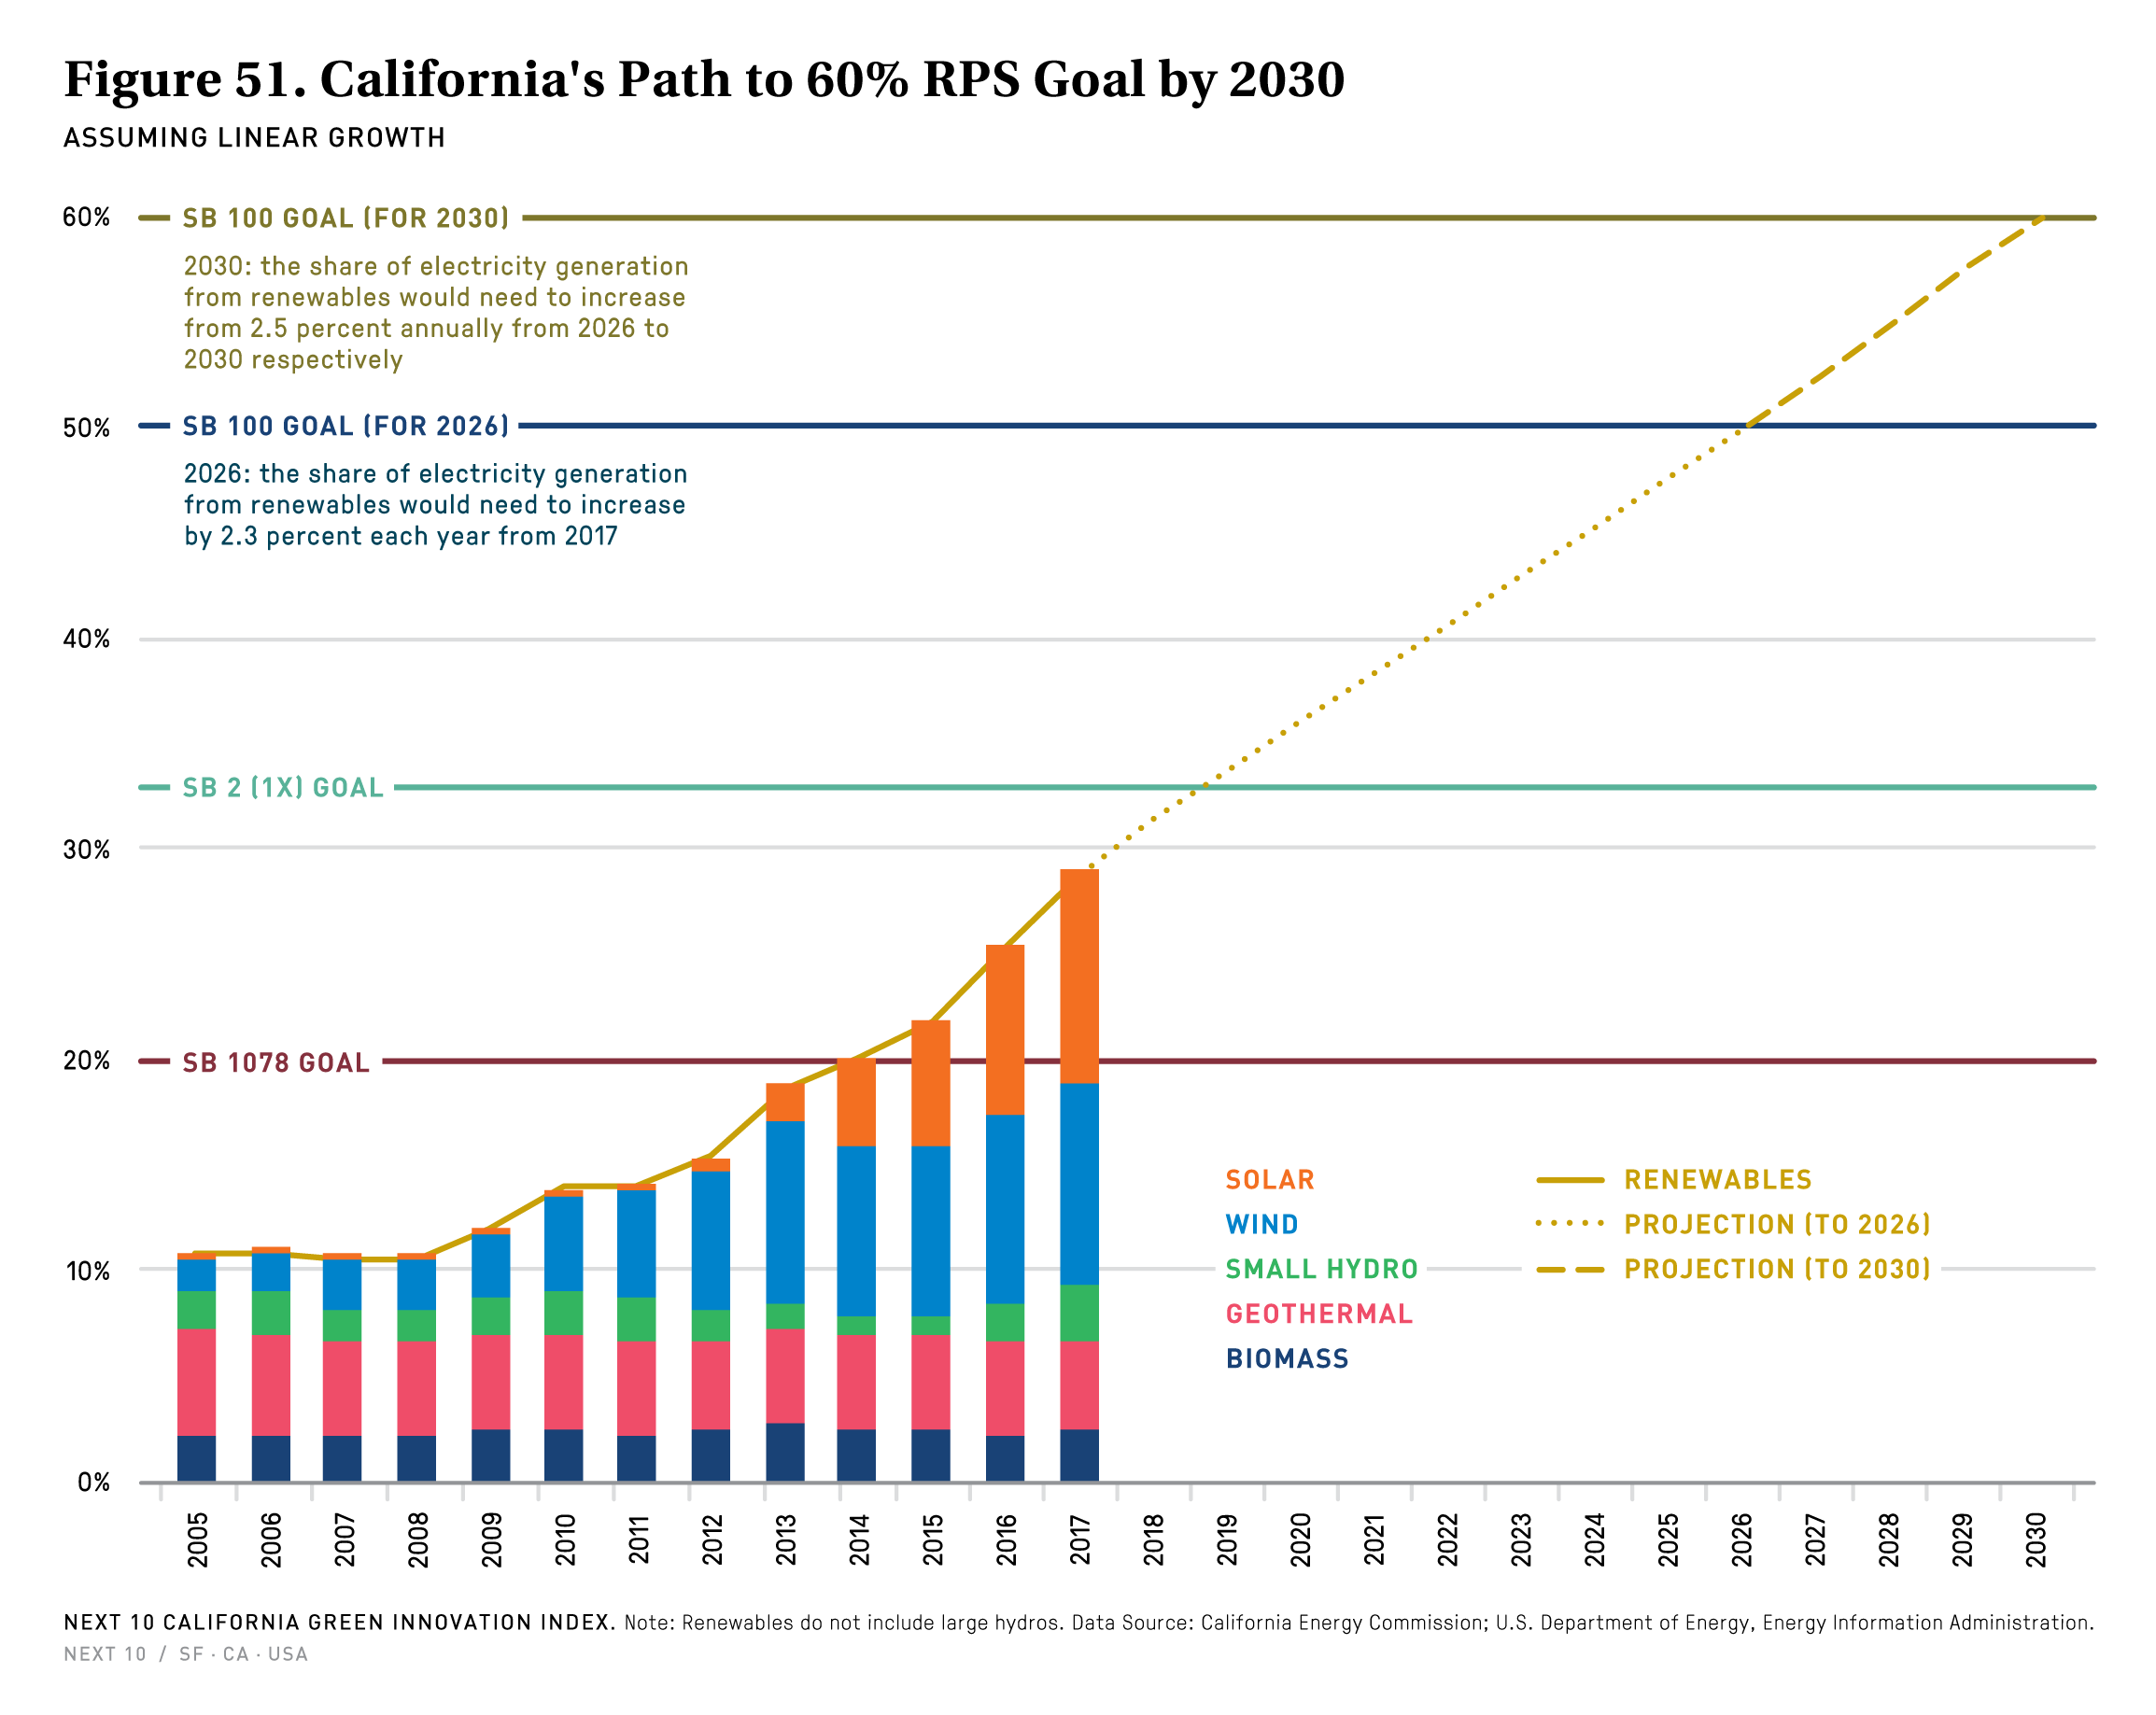 Figure 51. California's Path to 60% Renewables Goal by 2030